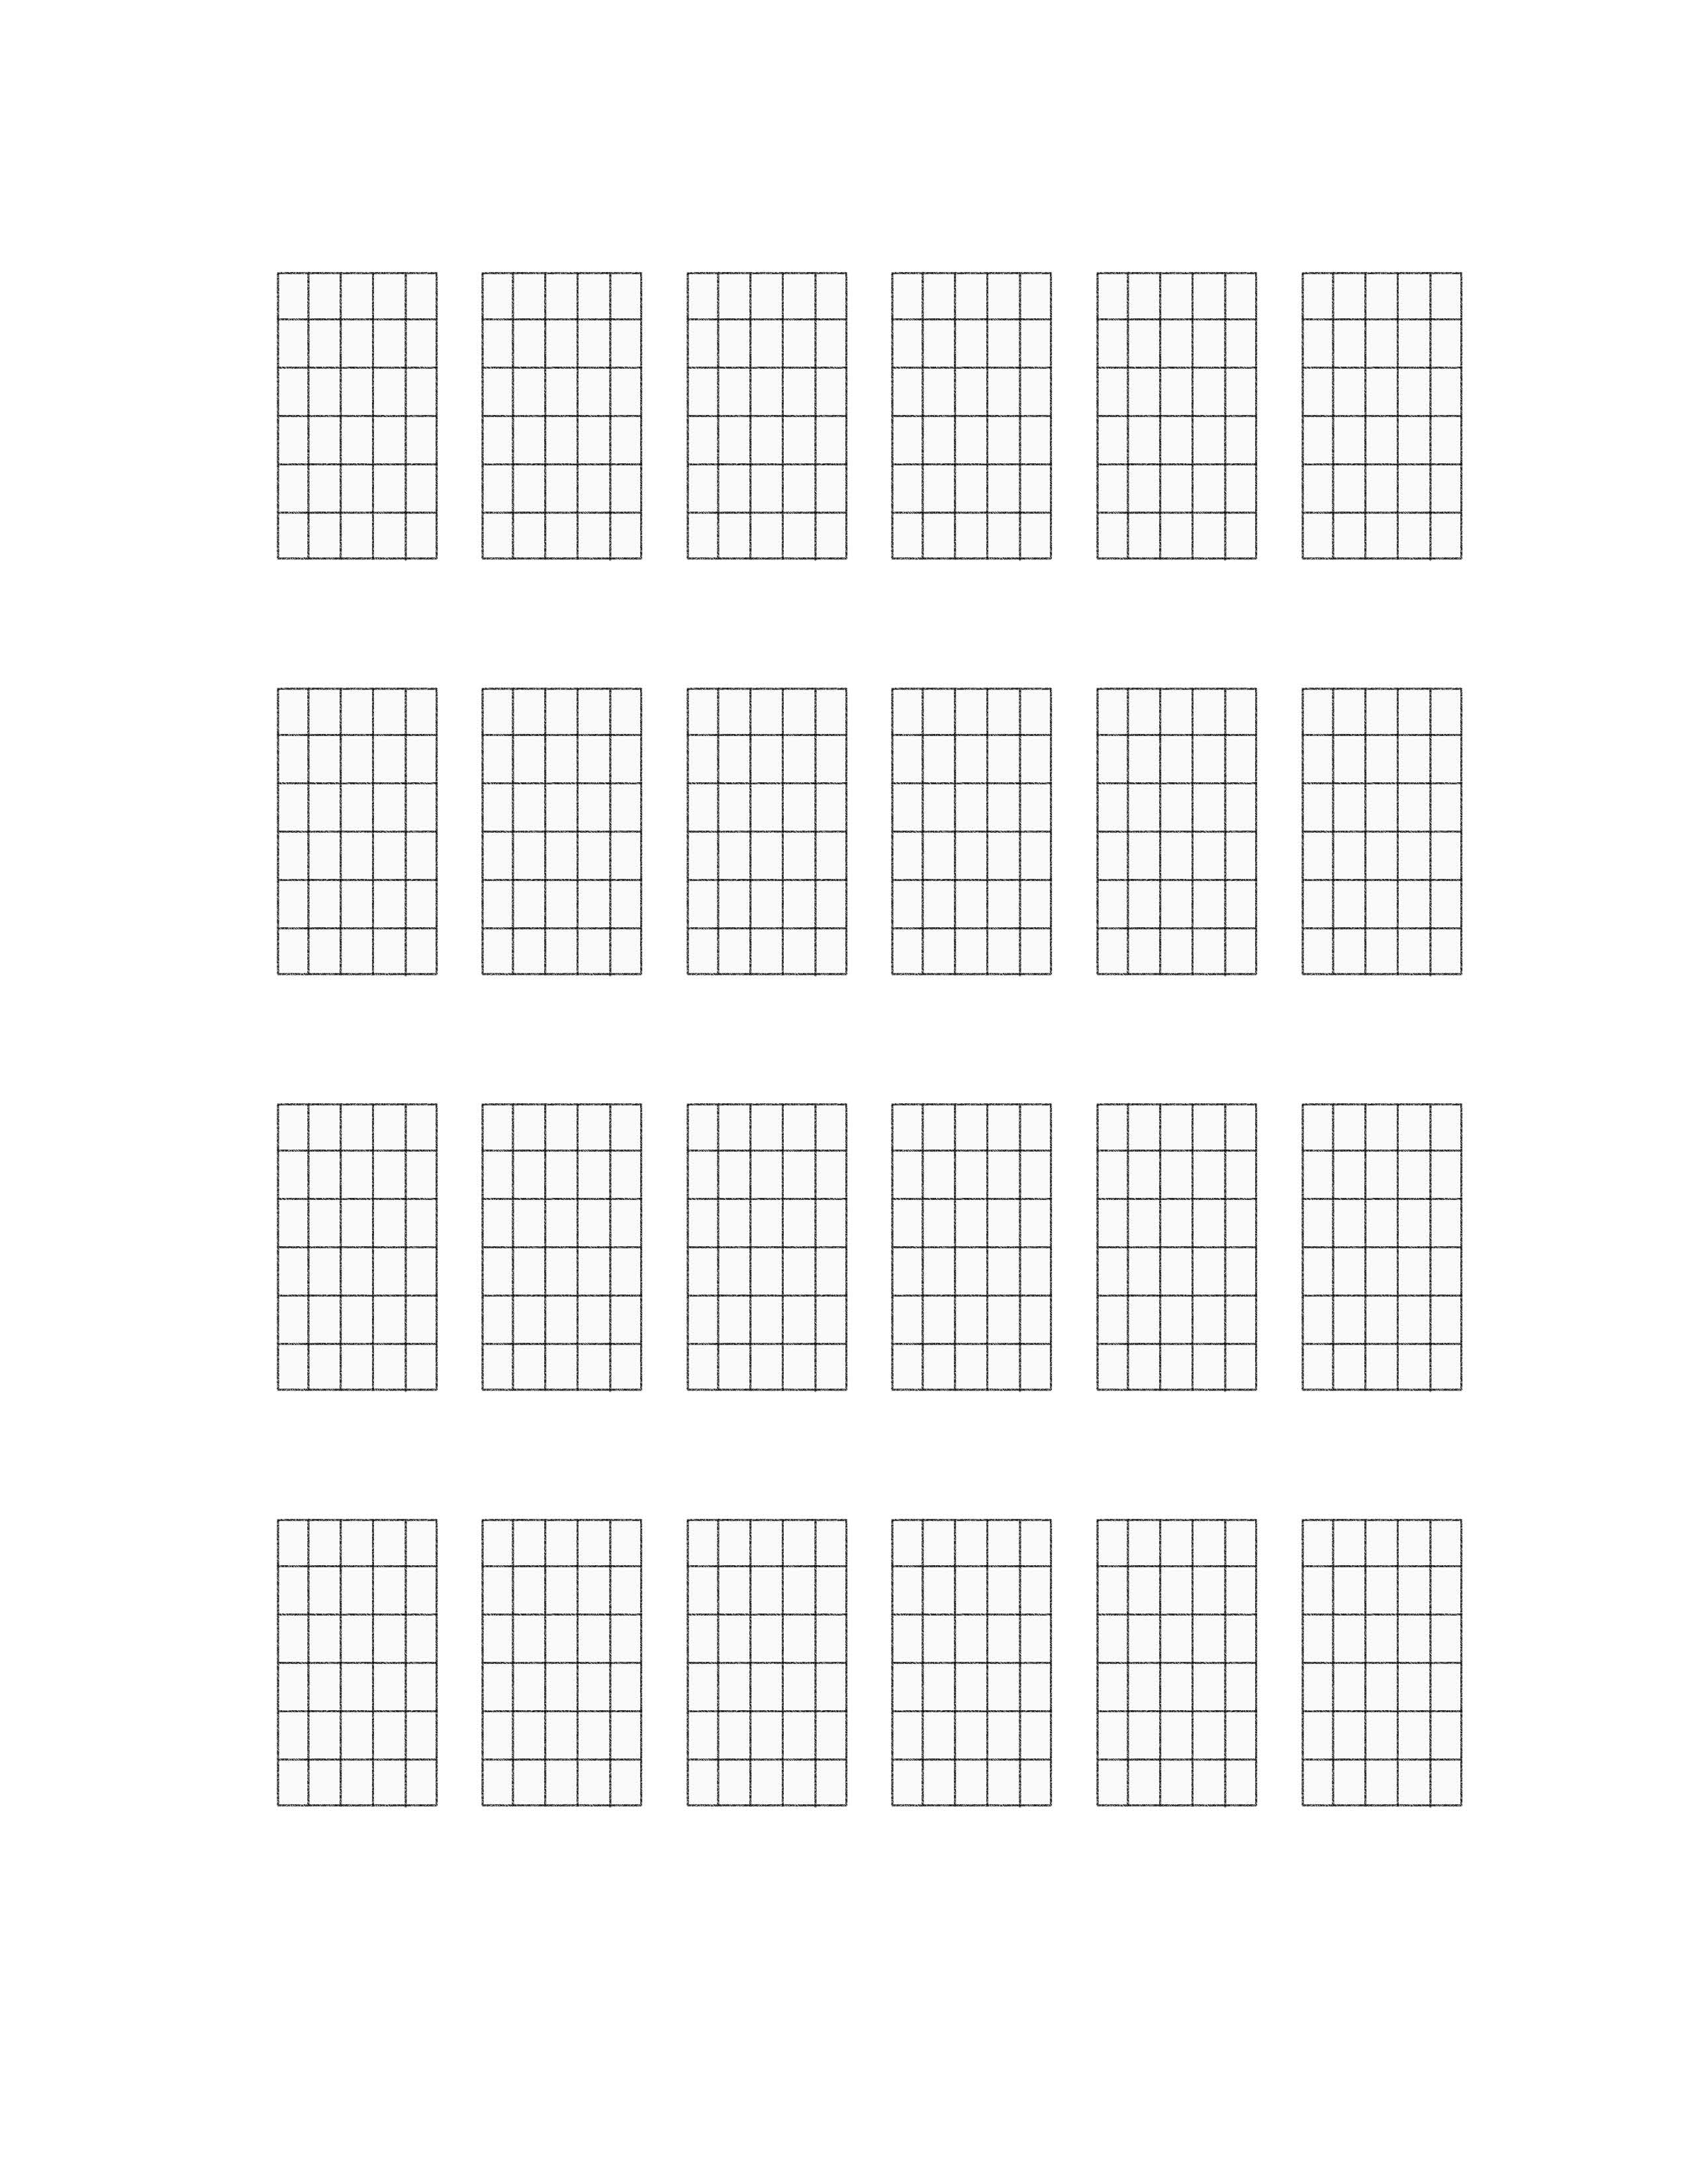 Awesome Chord Chart Template Image Collection - Resume Ideas ...